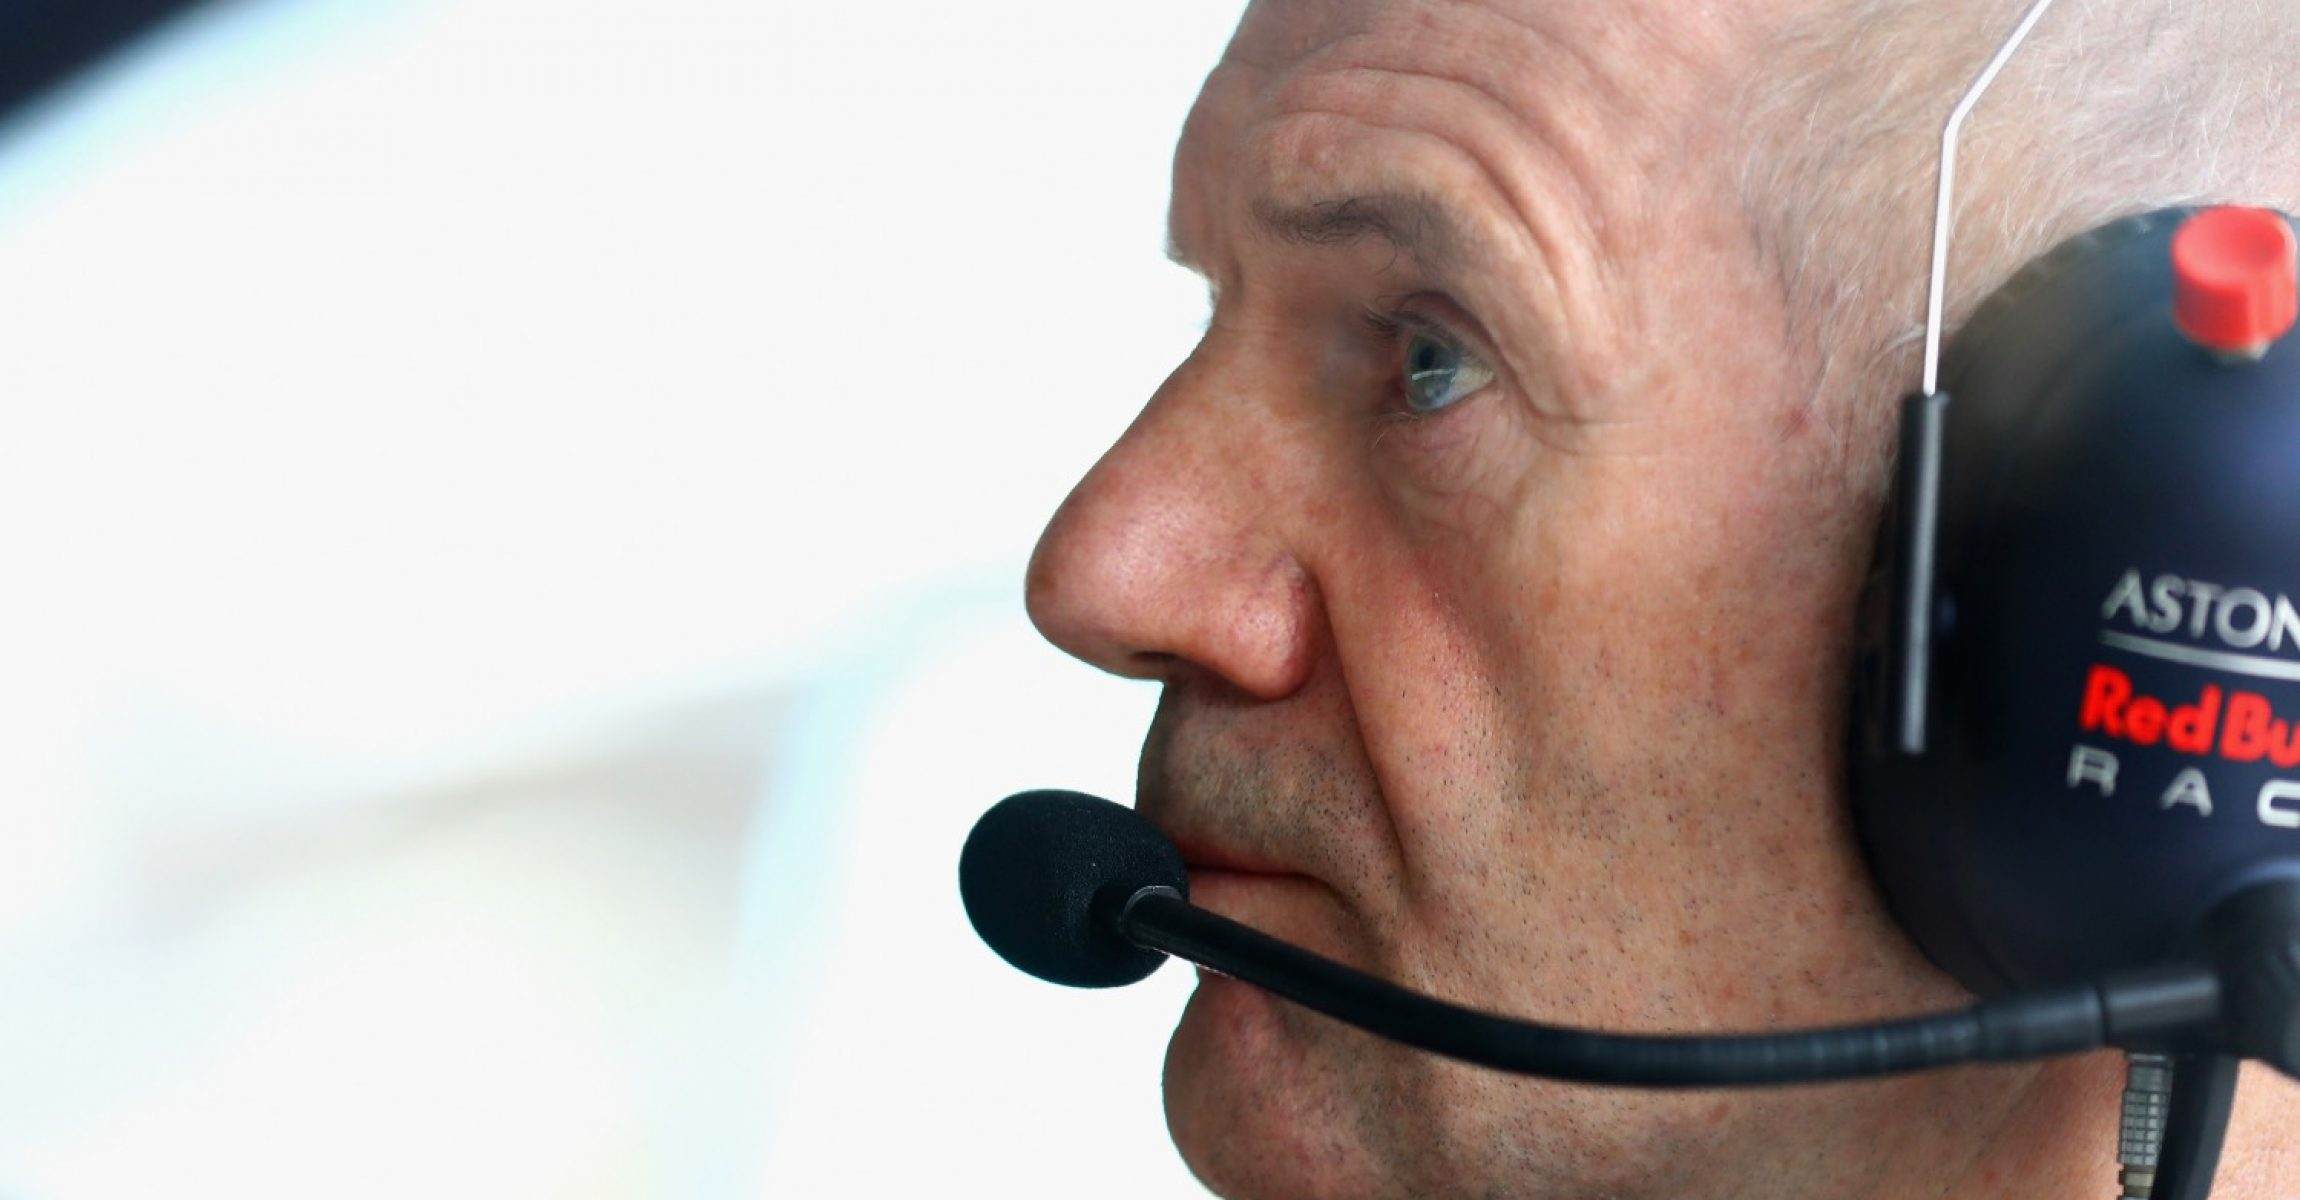 BAKU, AZERBAIJAN - APRIL 28: Adrian Newey, the Chief Technical Officer of Red Bull Racing looks on during qualifying for the Azerbaijan Formula One Grand Prix at Baku City Circuit on April 28, 2018 in Baku, Azerbaijan.  (Photo by Mark Thompson/Getty Images)